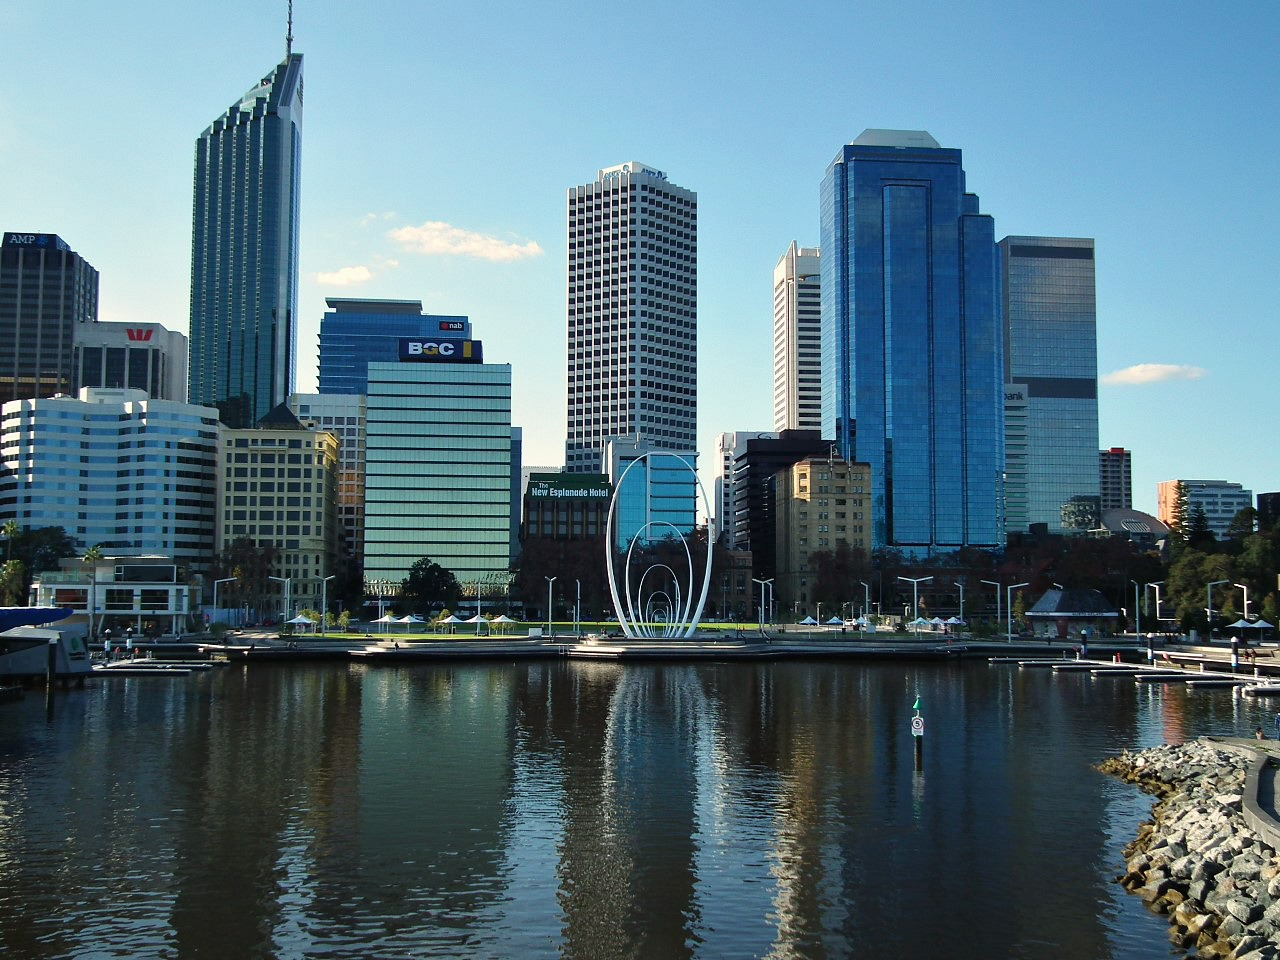 Elizabeth Quay backdropped by the Perth City skyline